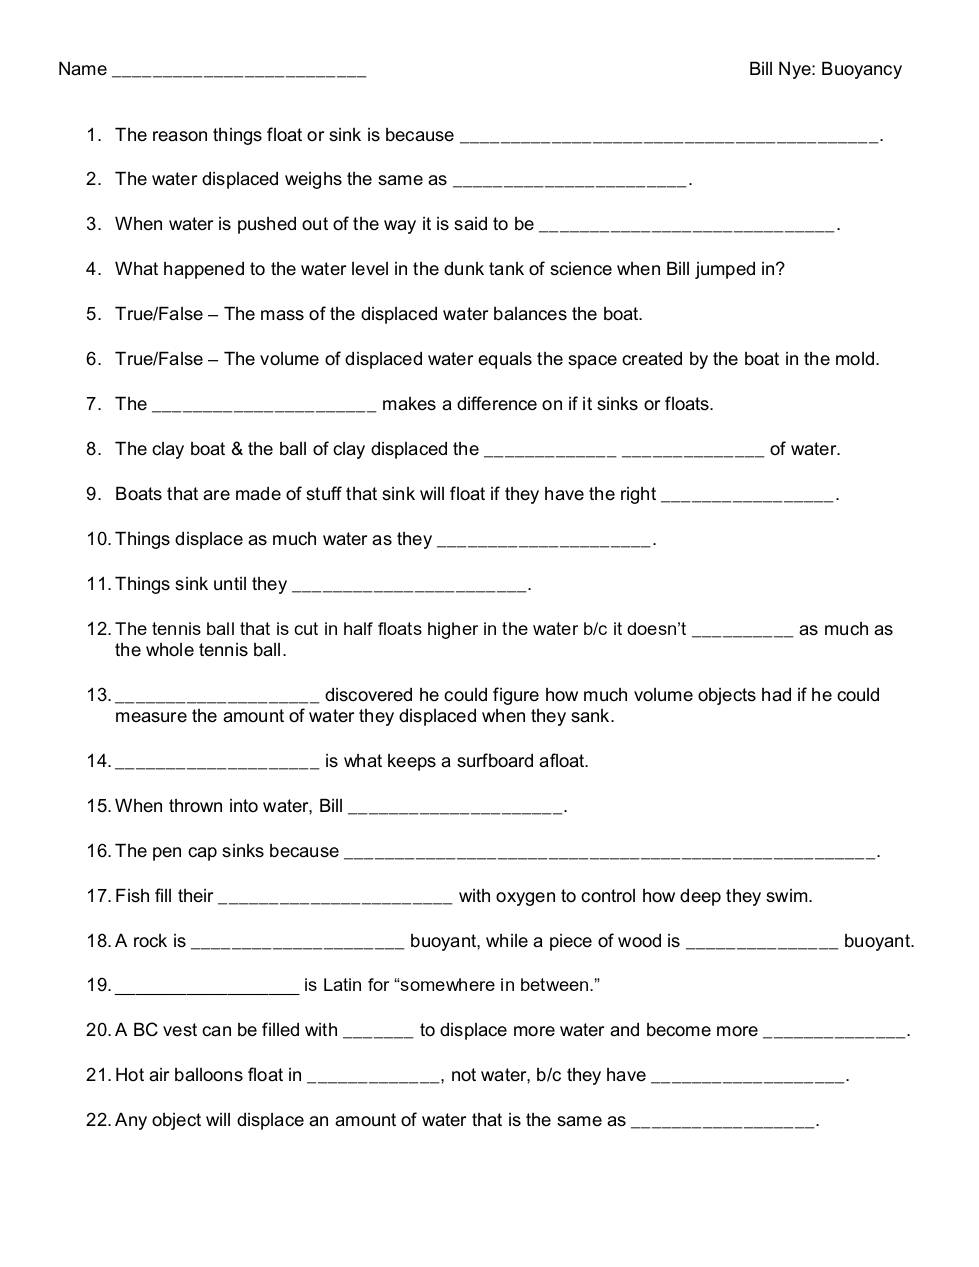 Worksheets Bill Nye Worksheets bill nye buoyancy dochub page 1 of 5